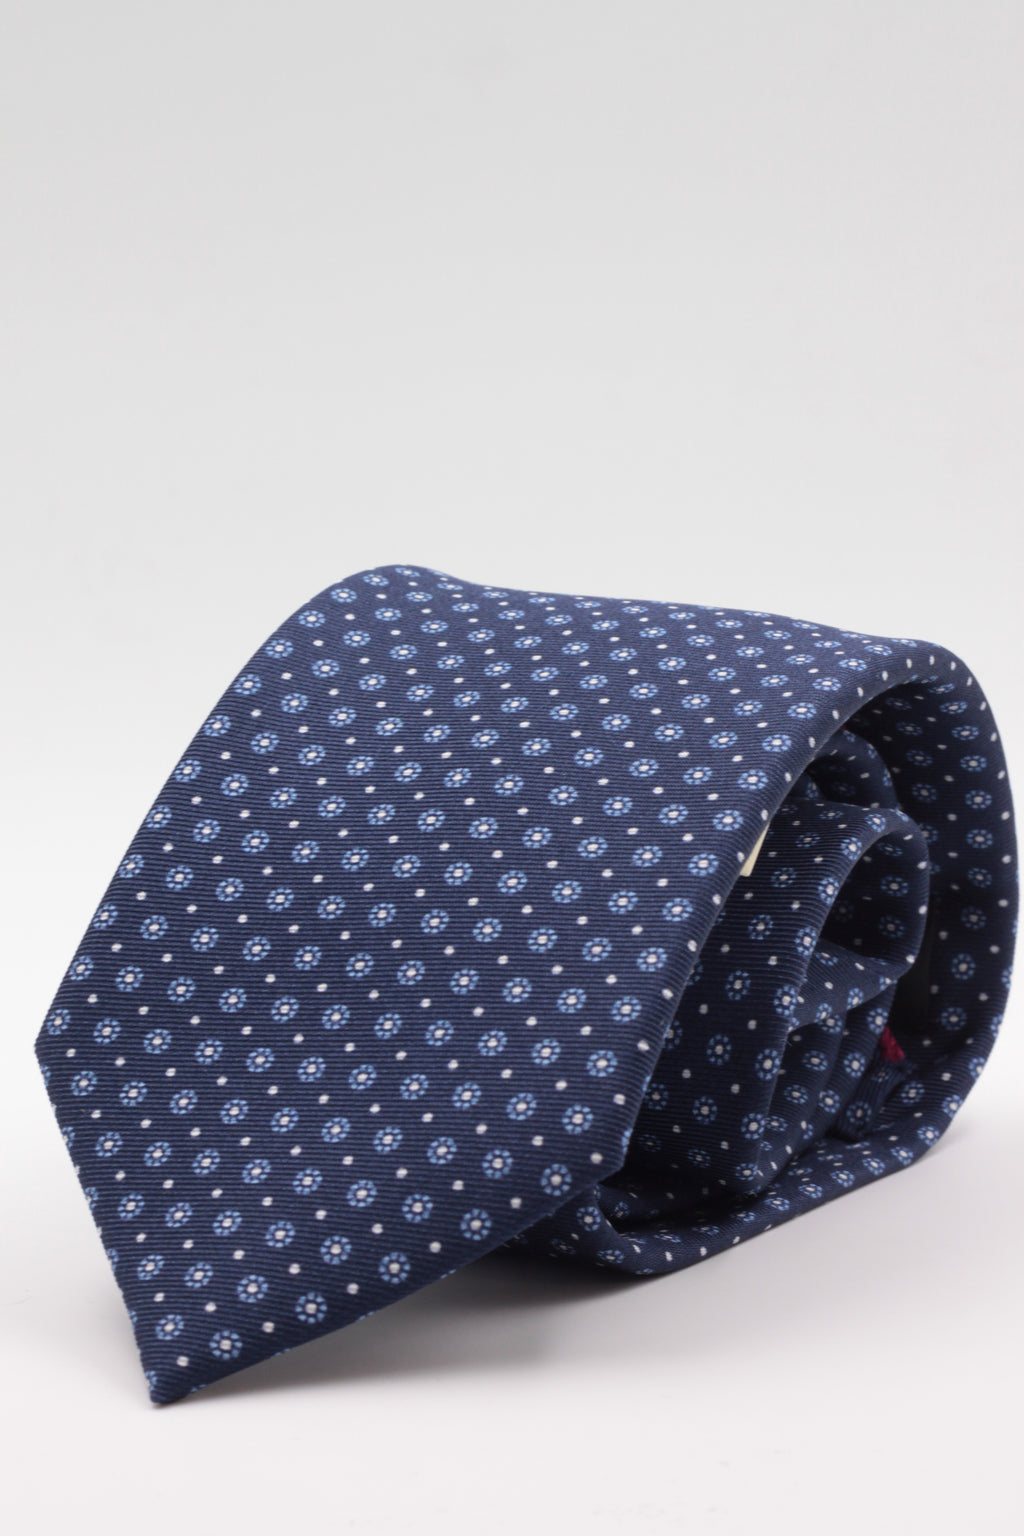 Holliday & Brown for Cruciani & Bella 100% printed Silk Self tipped Blue navy, light blue and white floral motif tie Handmade in Italy 8 cm x 150 cm